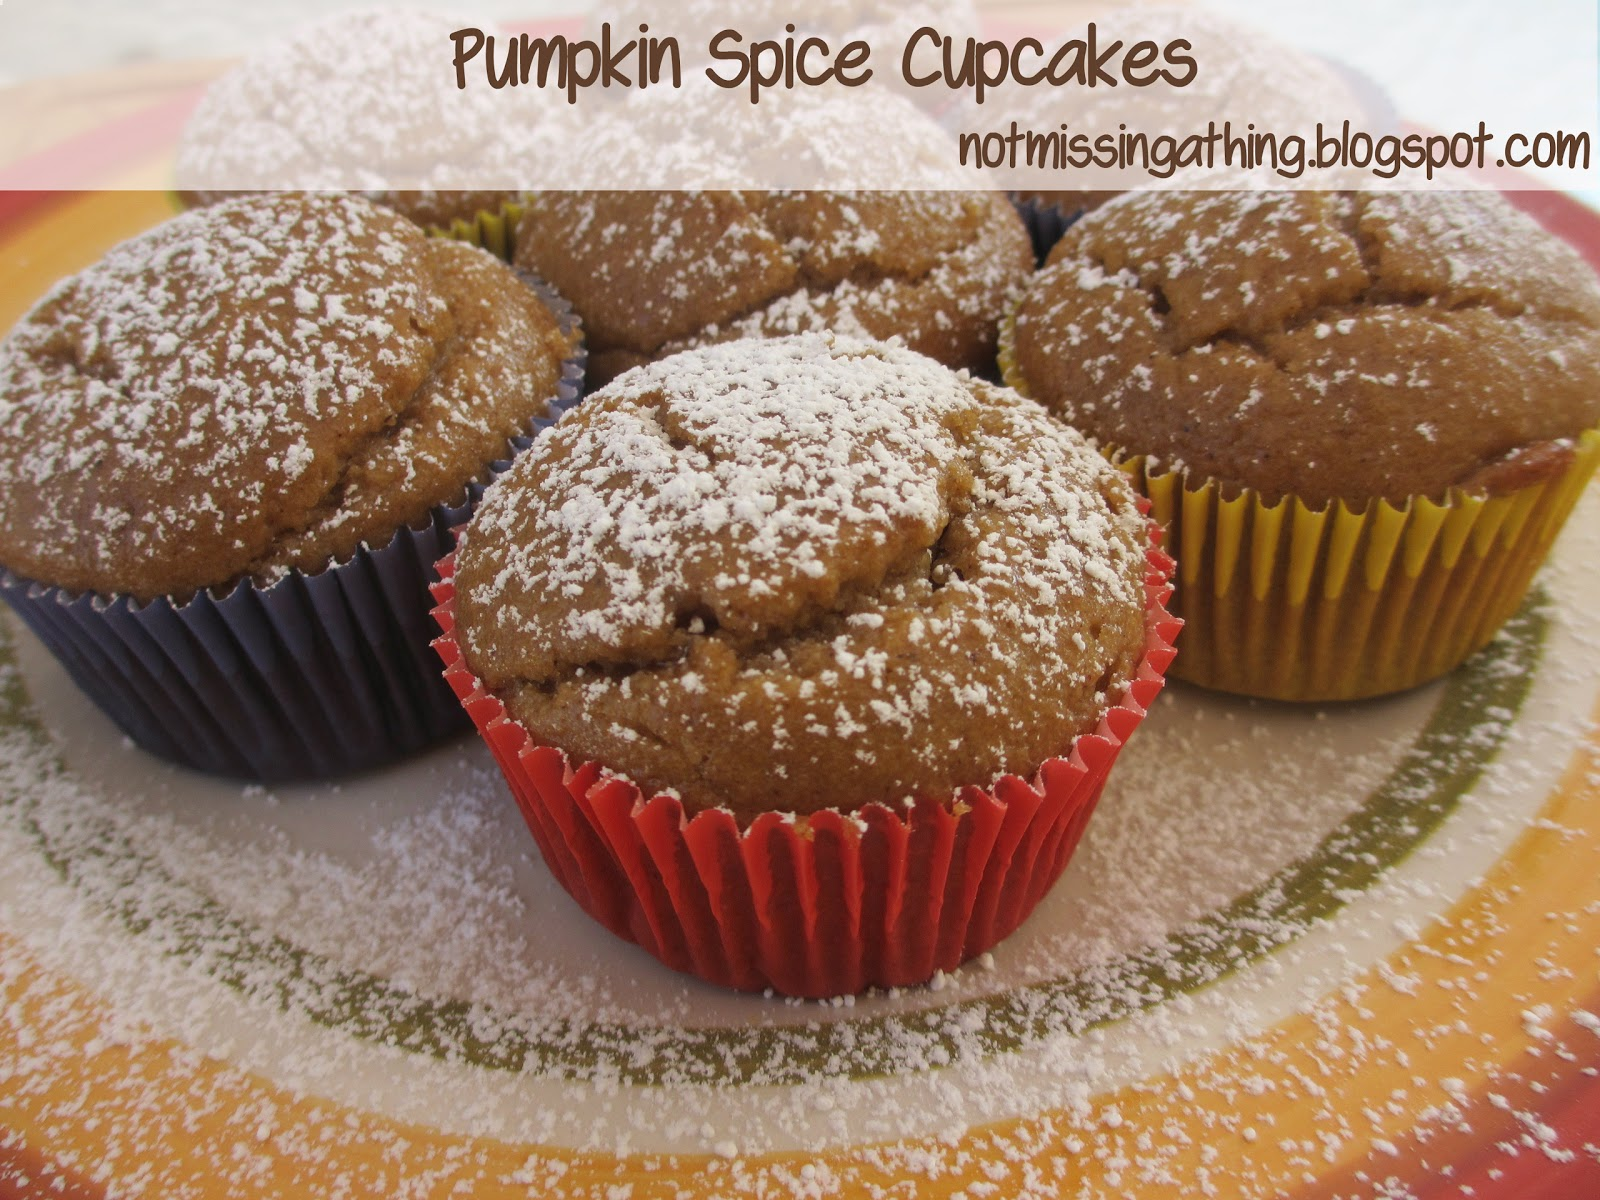 ... Friendly Cooking: Pumpkin Spice Cupcakes {gluten, dairy and egg-free